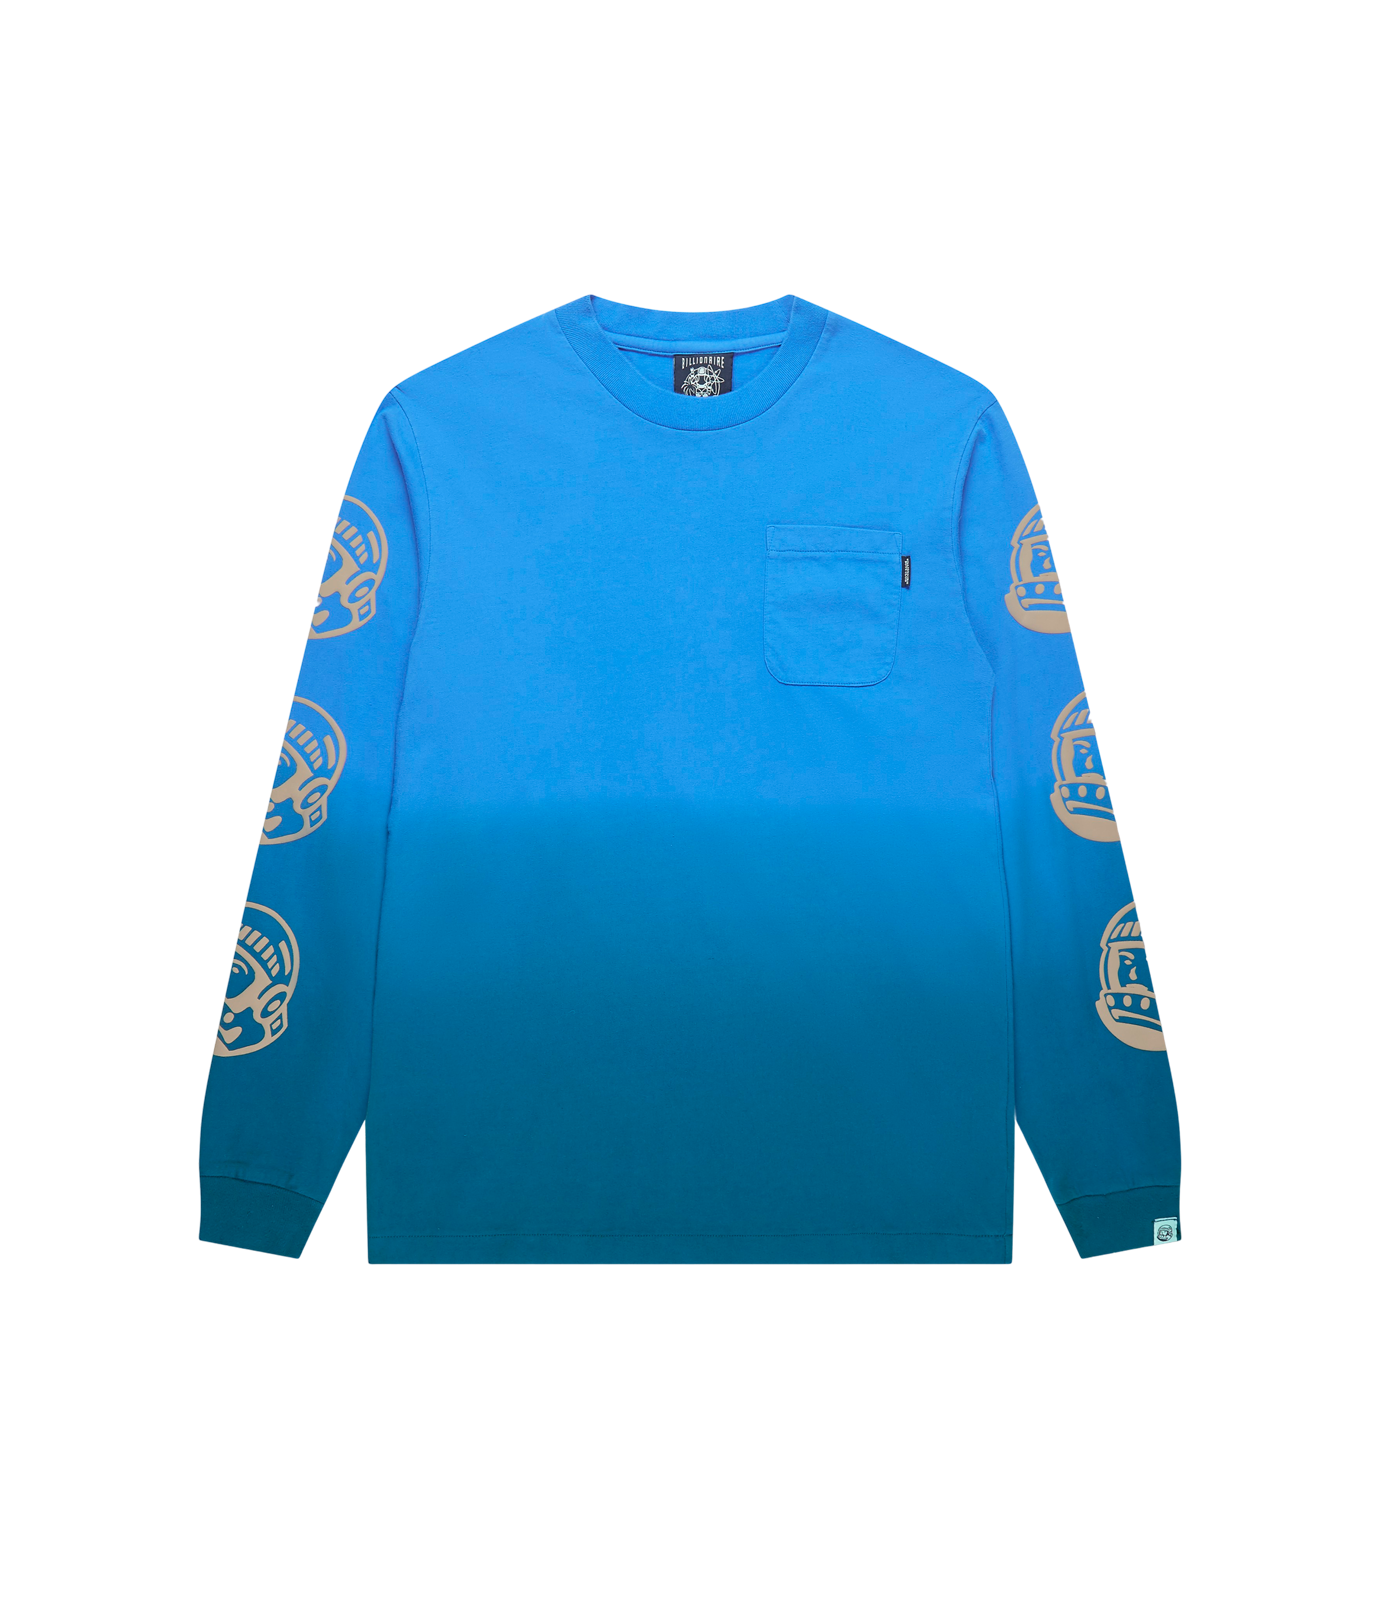 DIP DYE EFFECT L/S T-SHIRT - BLUE/TEAL